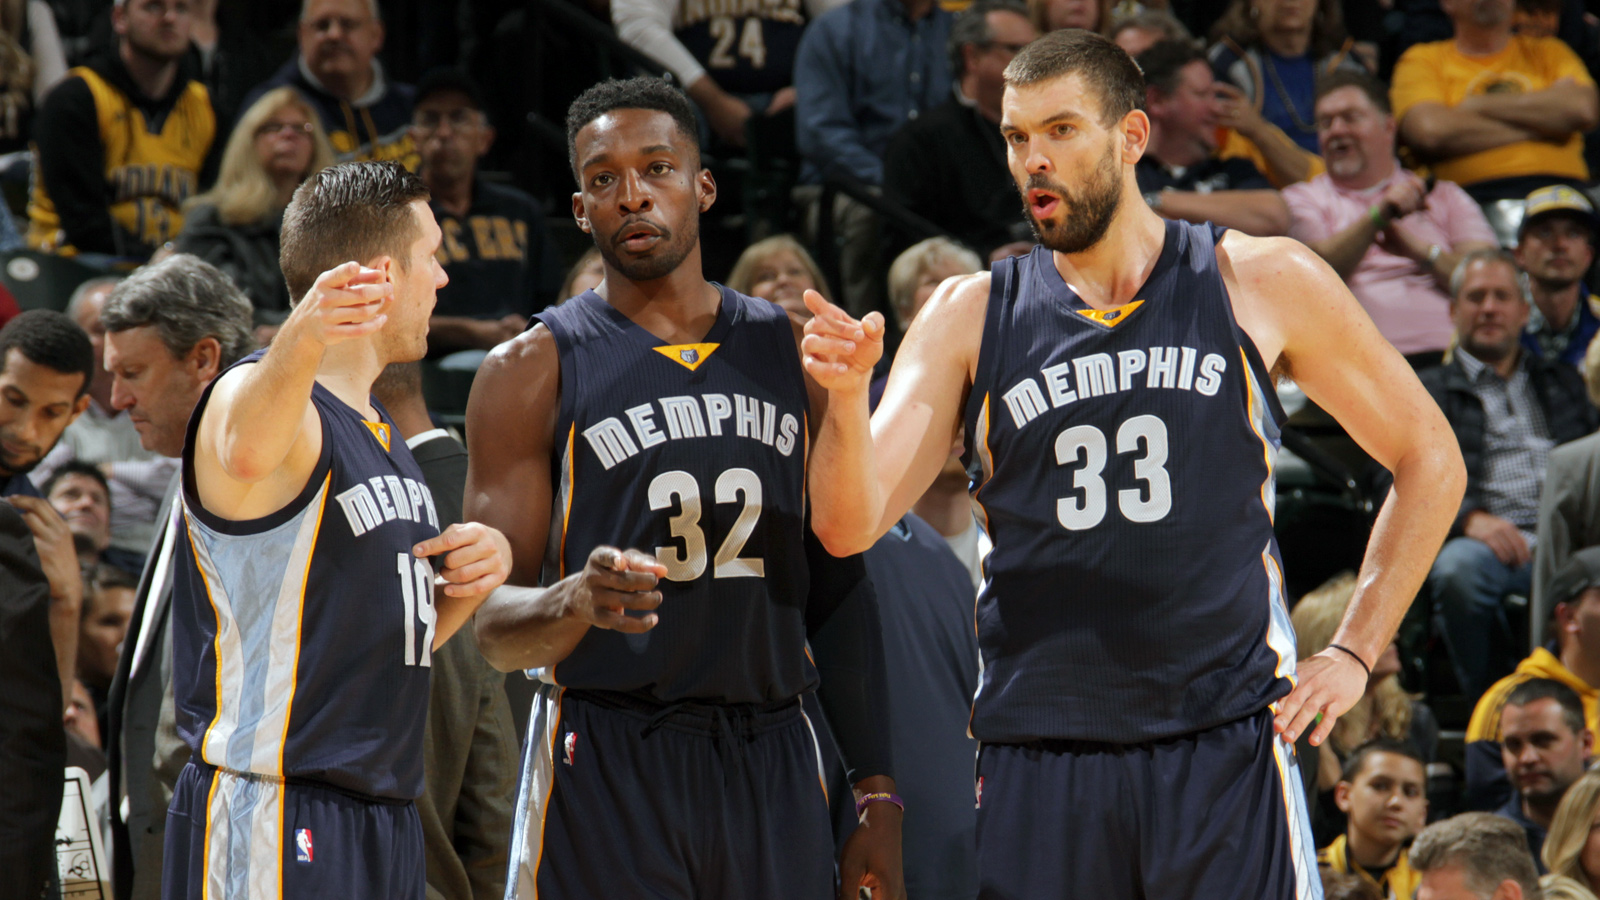 Gasol, Grizzlies come alive late, avoid 0-2 start with flurry in Indy